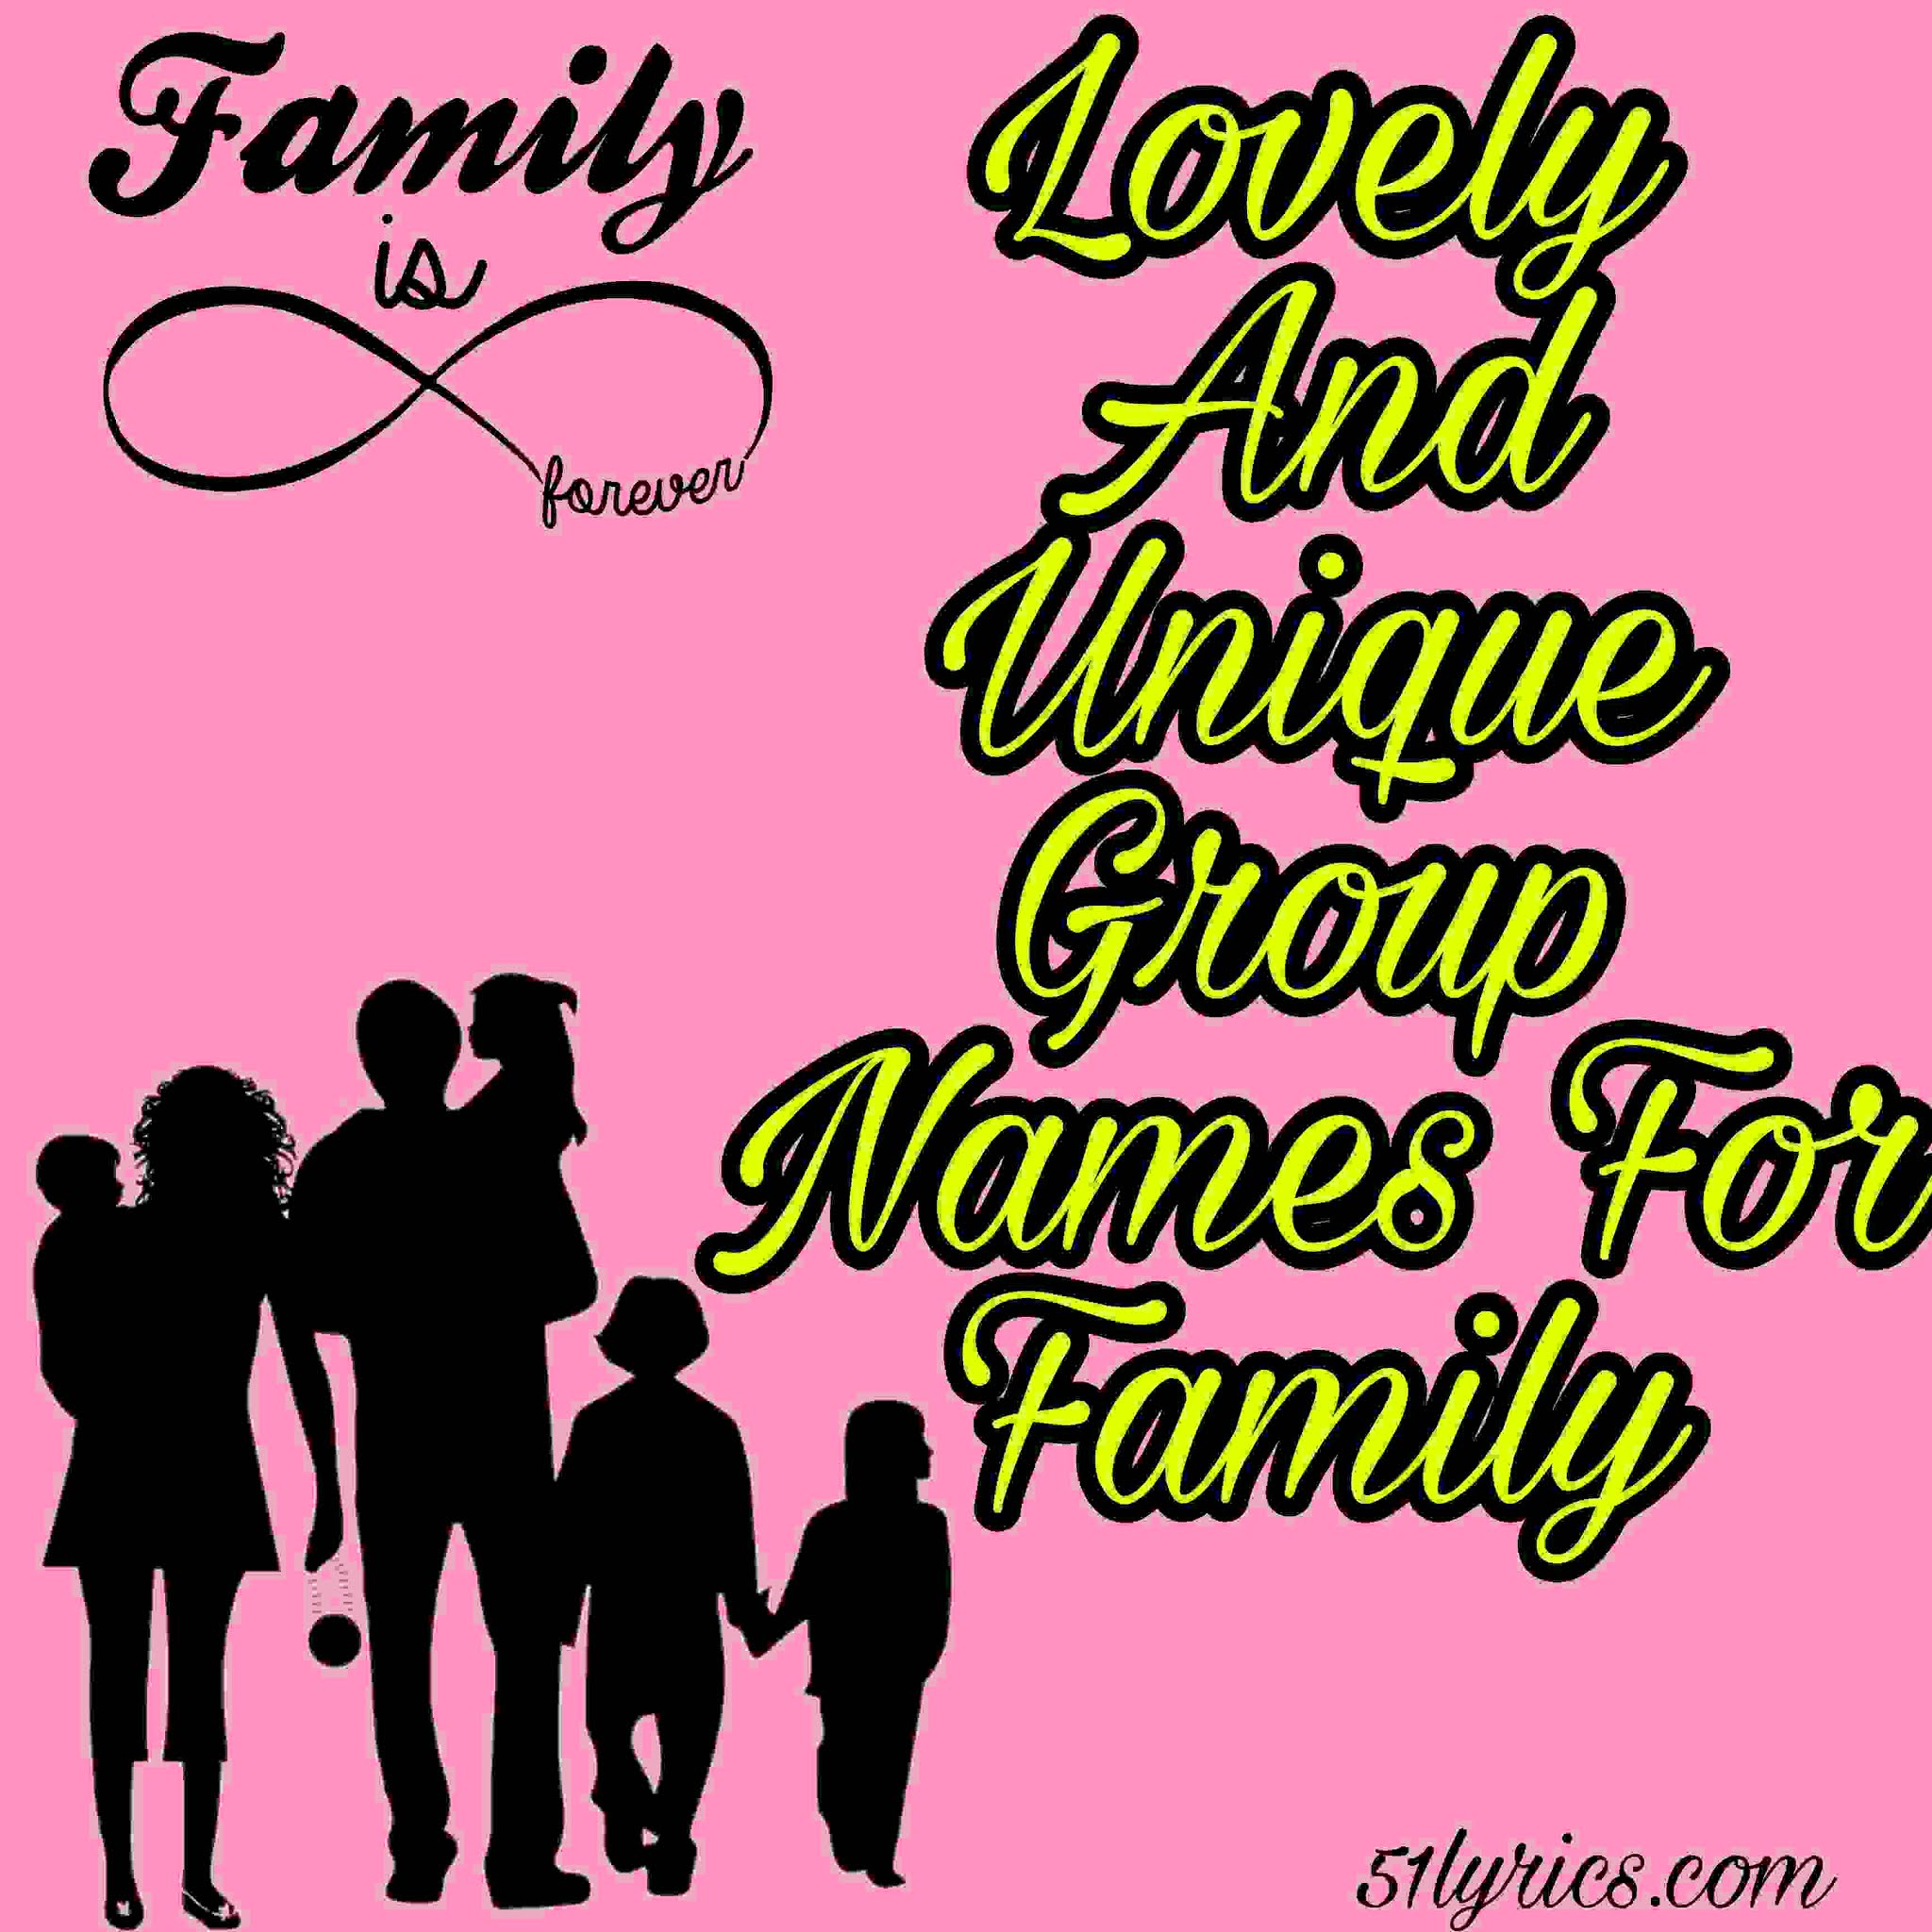 Group names for family